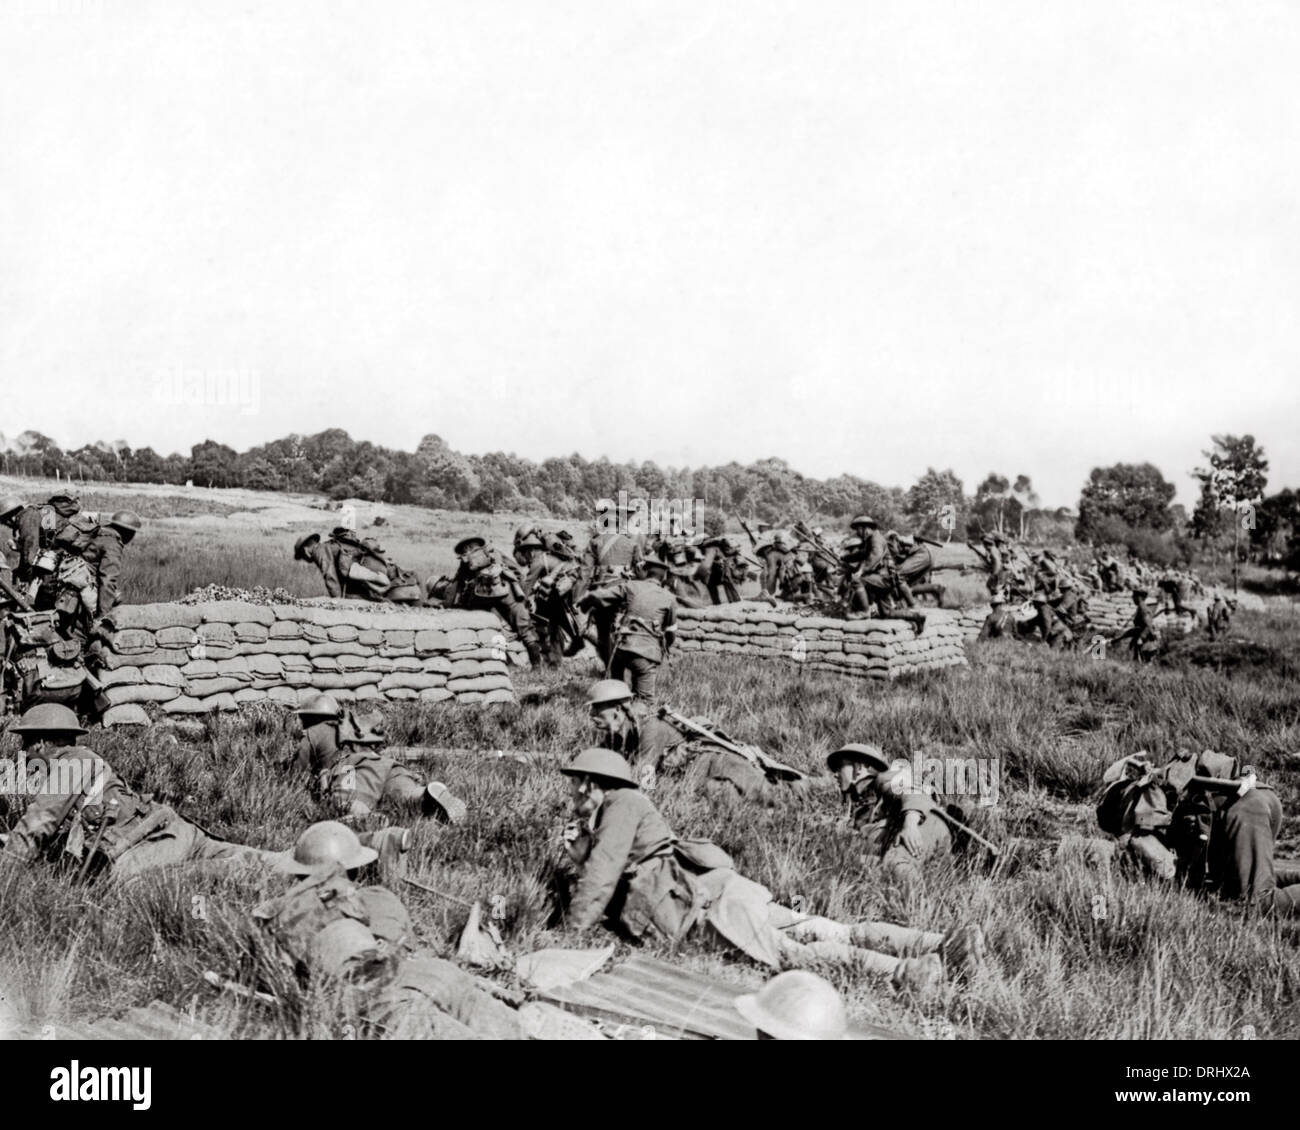 British troops on training exercise, Western Front, WW1 - Stock Image